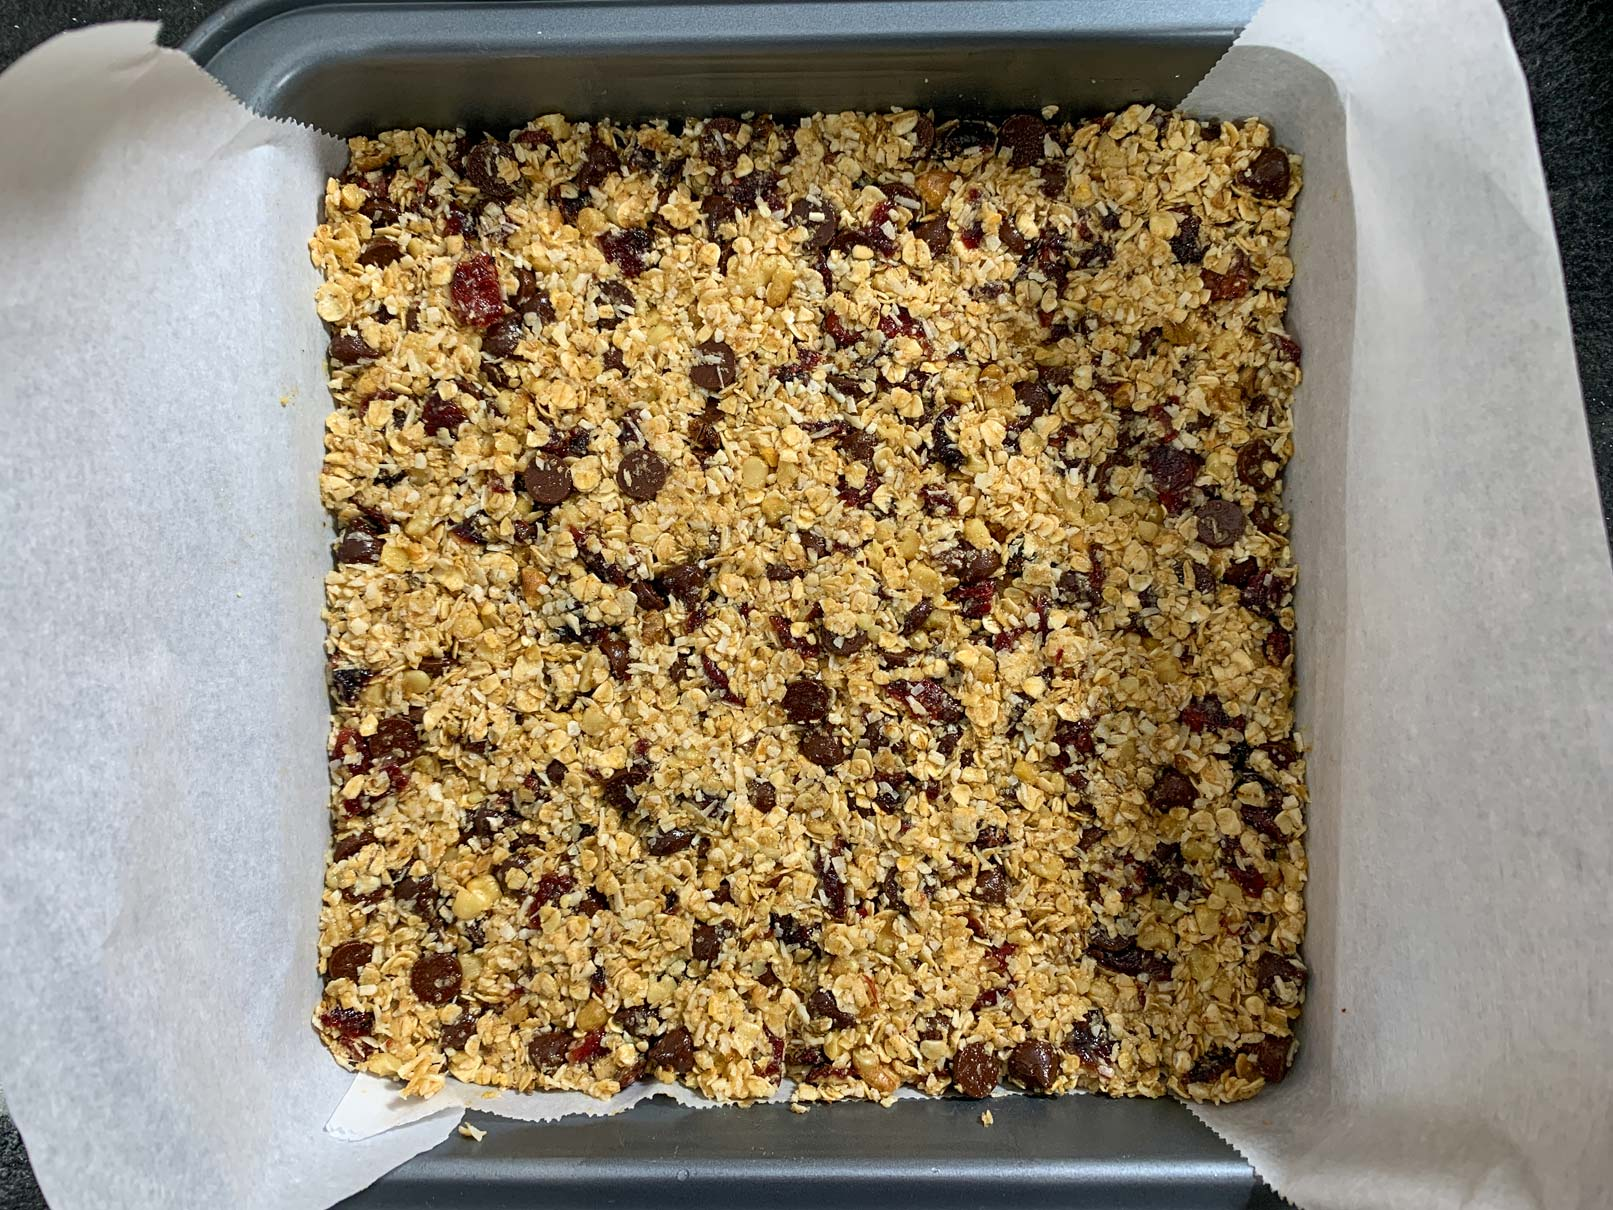 The granola bar mixture packed tightly into a pan